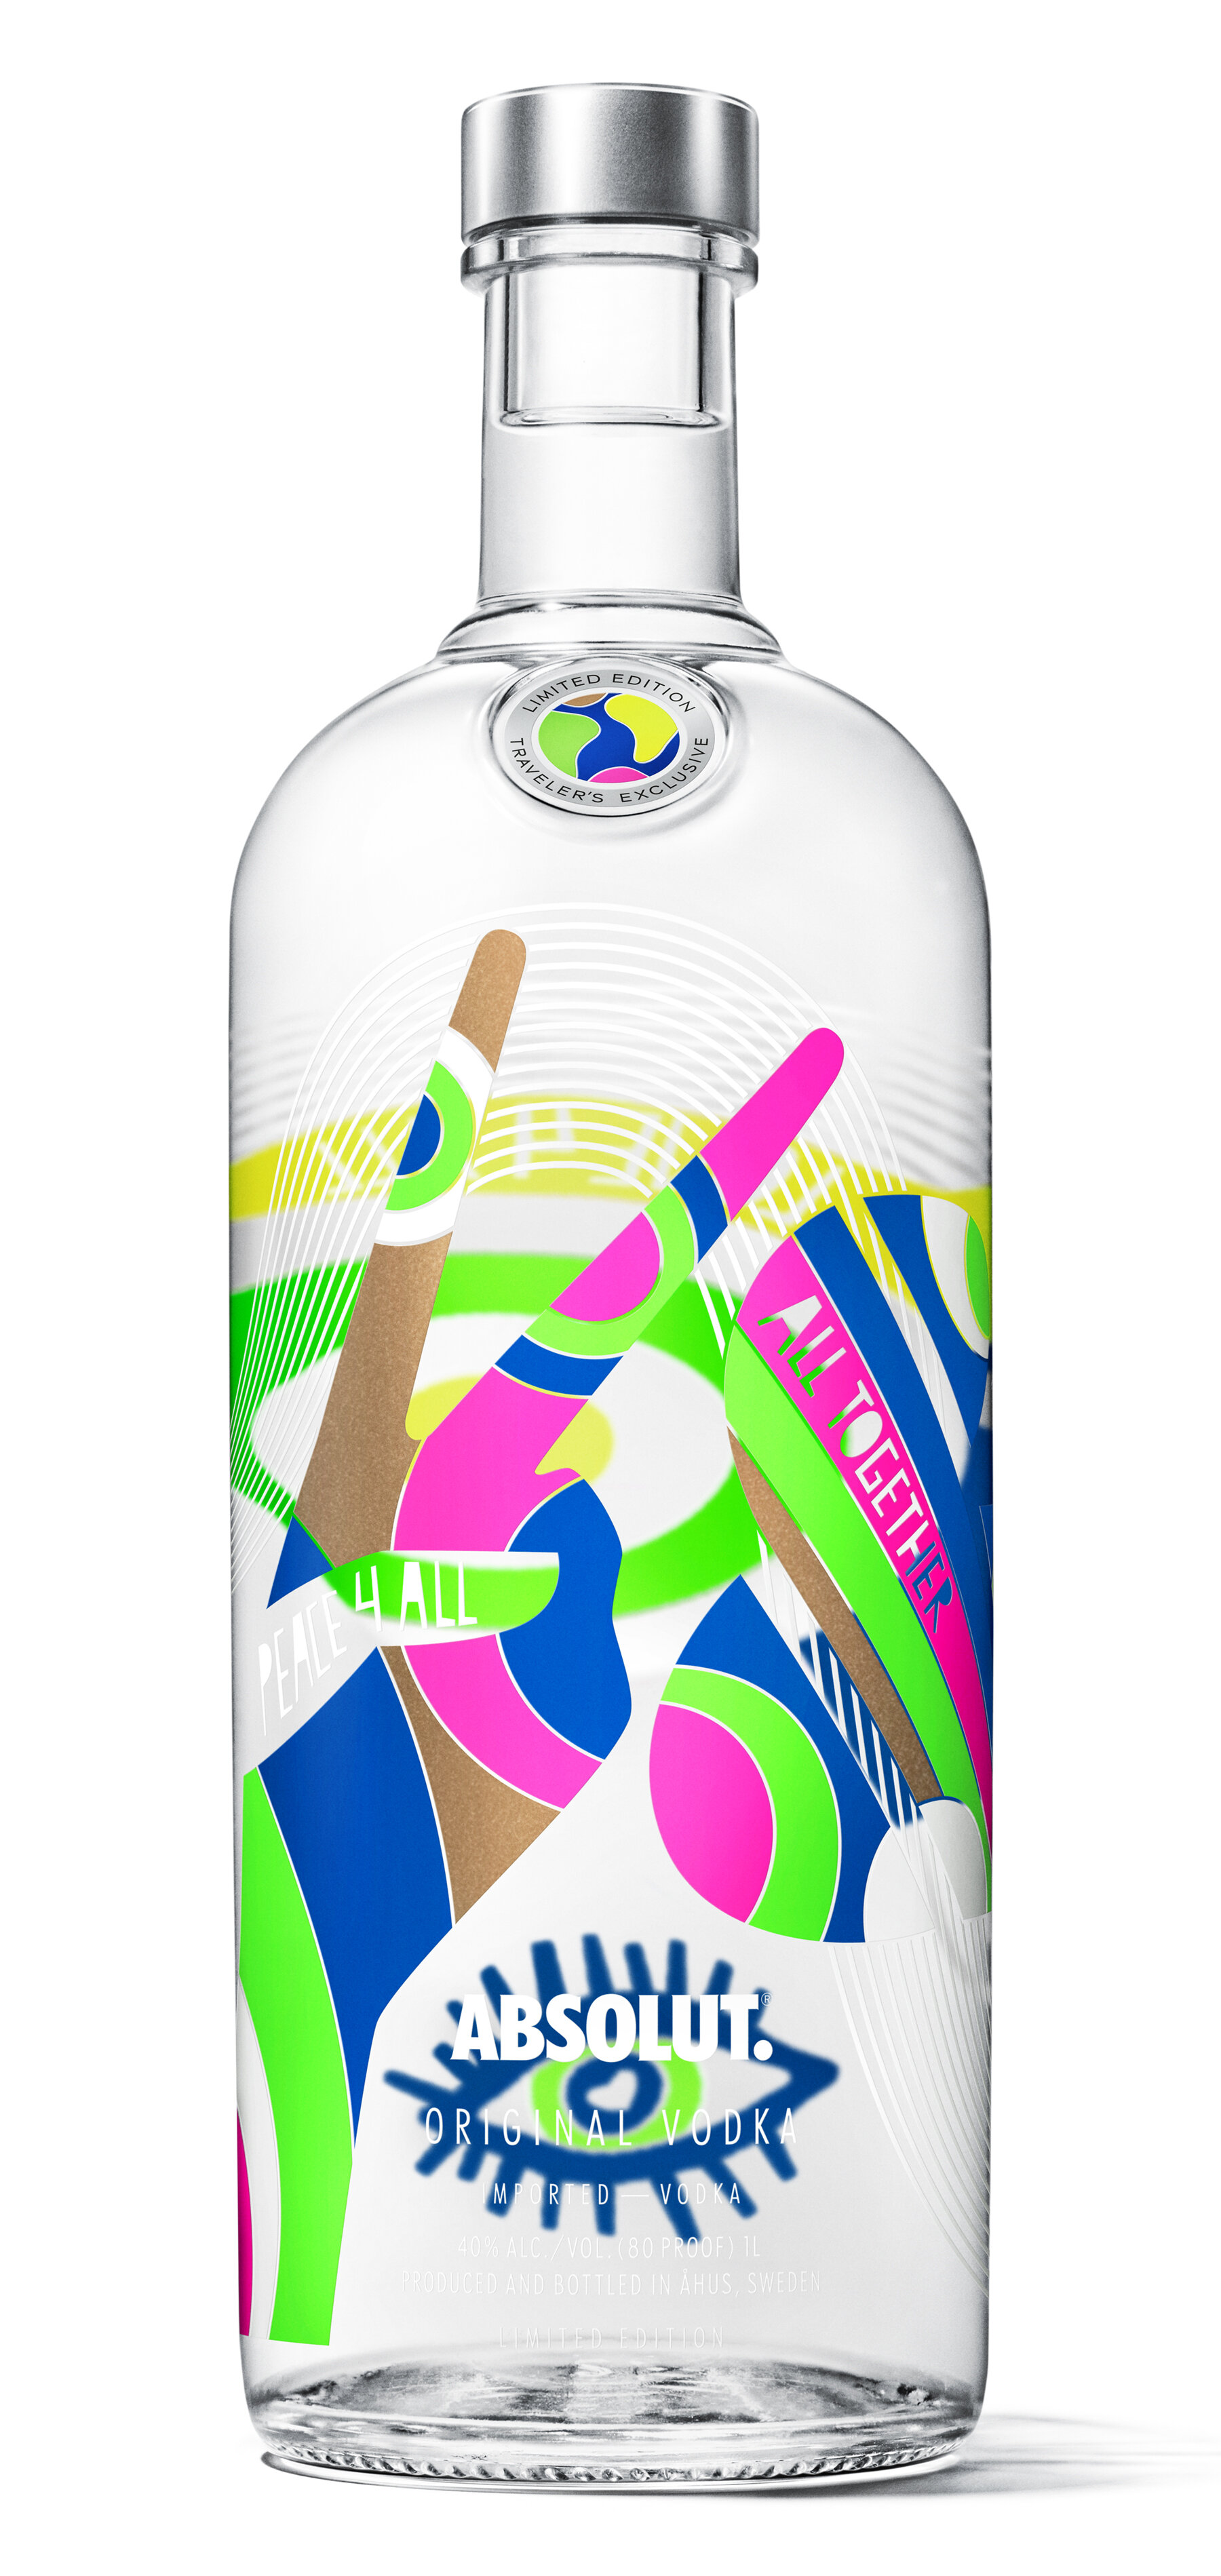 Absolut Vodka | Limited edition   https://www.absolut.com/en/products/absolut-world/